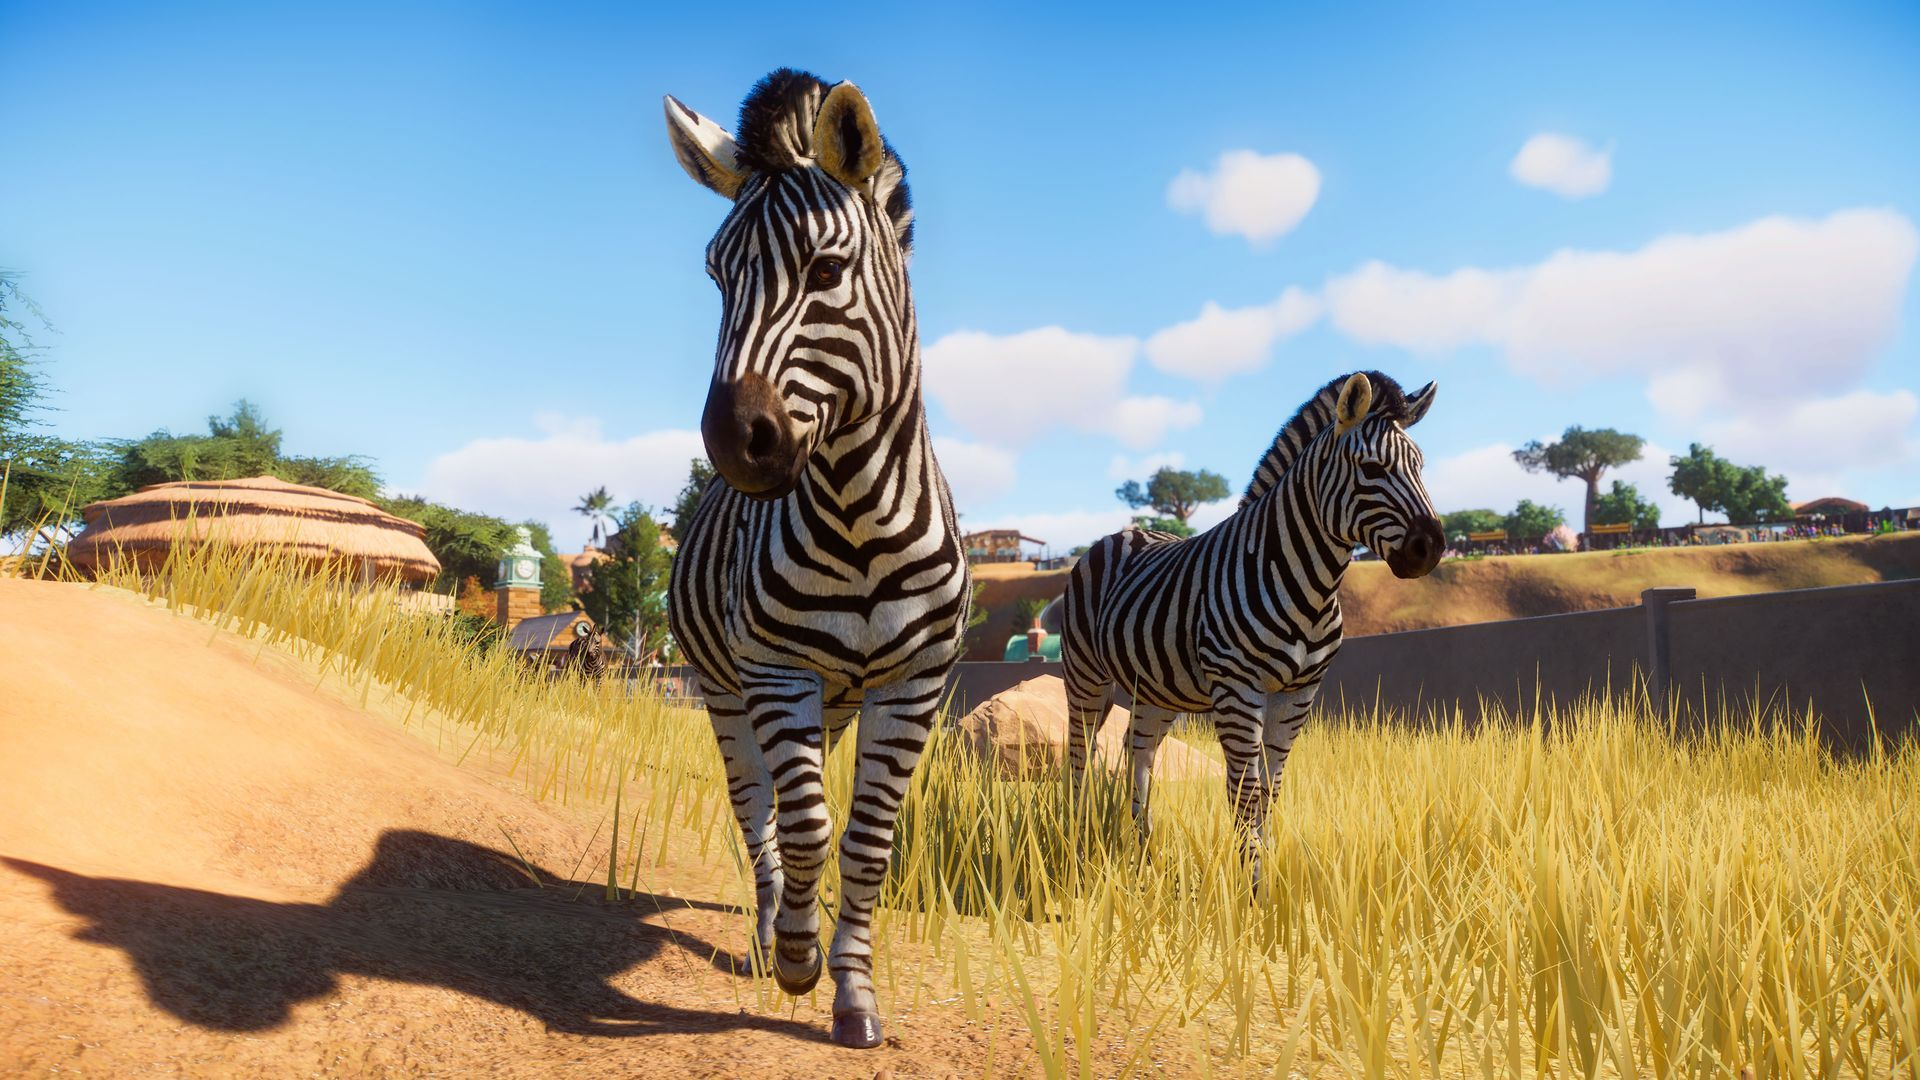 Planet Zoo brings back the Zoo Tycoon nostalgia